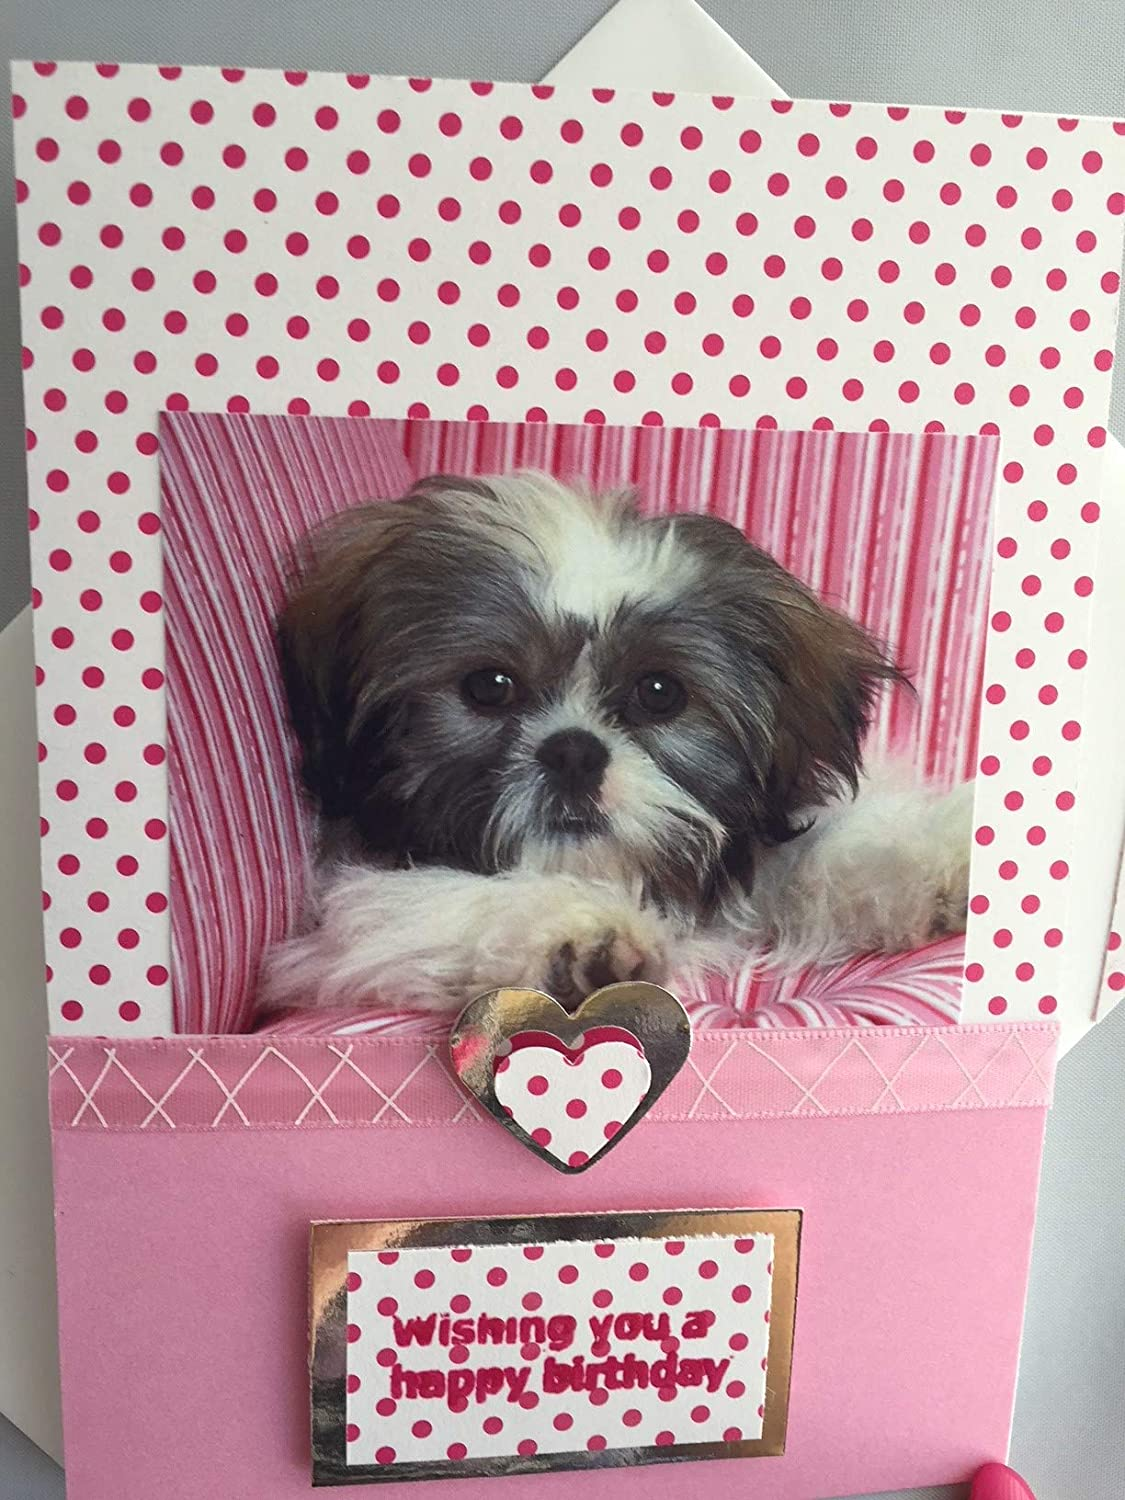 SHIH TZU Puppy GREETINGS Dog Card Handmade Happy Birthday Wishes Congratulations Pink A6 C6 Size Amazoncouk